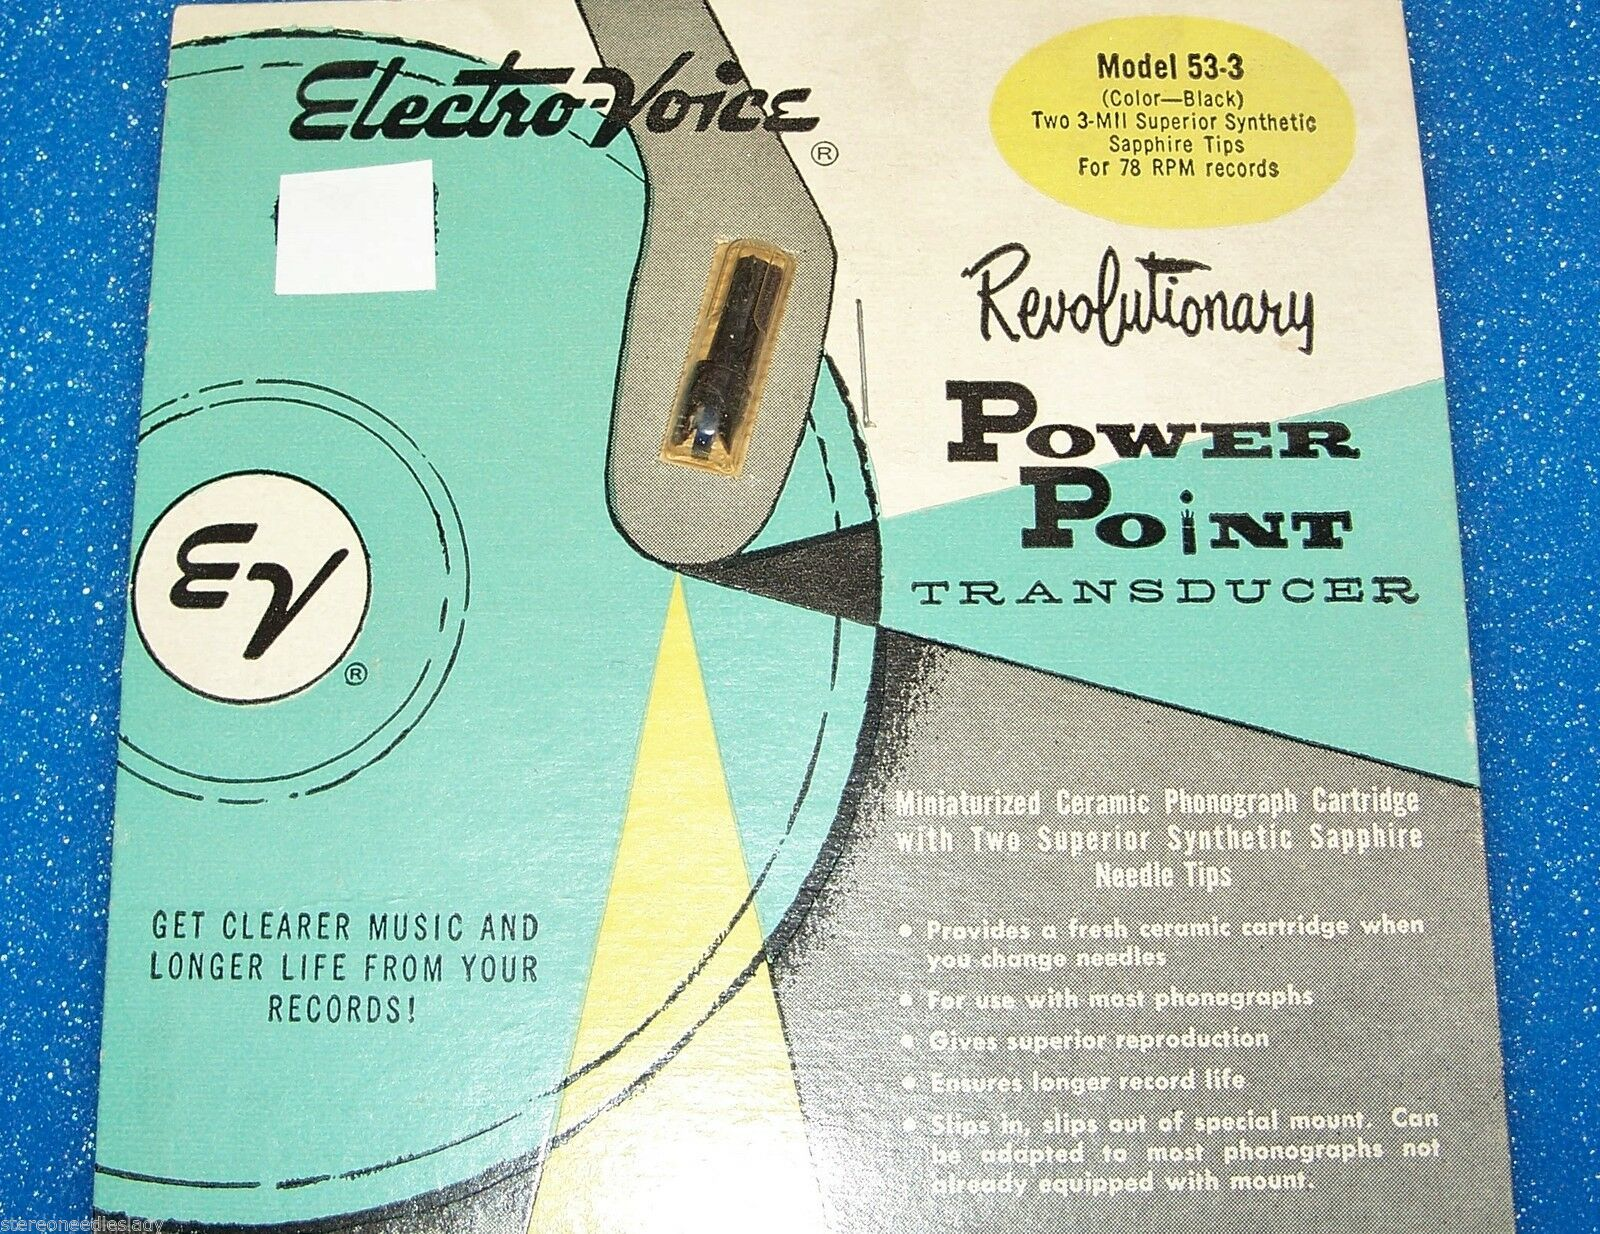 Electro-Voice EV 53-3 Zenith 142-80 87 cartridge needle for Astatic 93T3 78 RPM